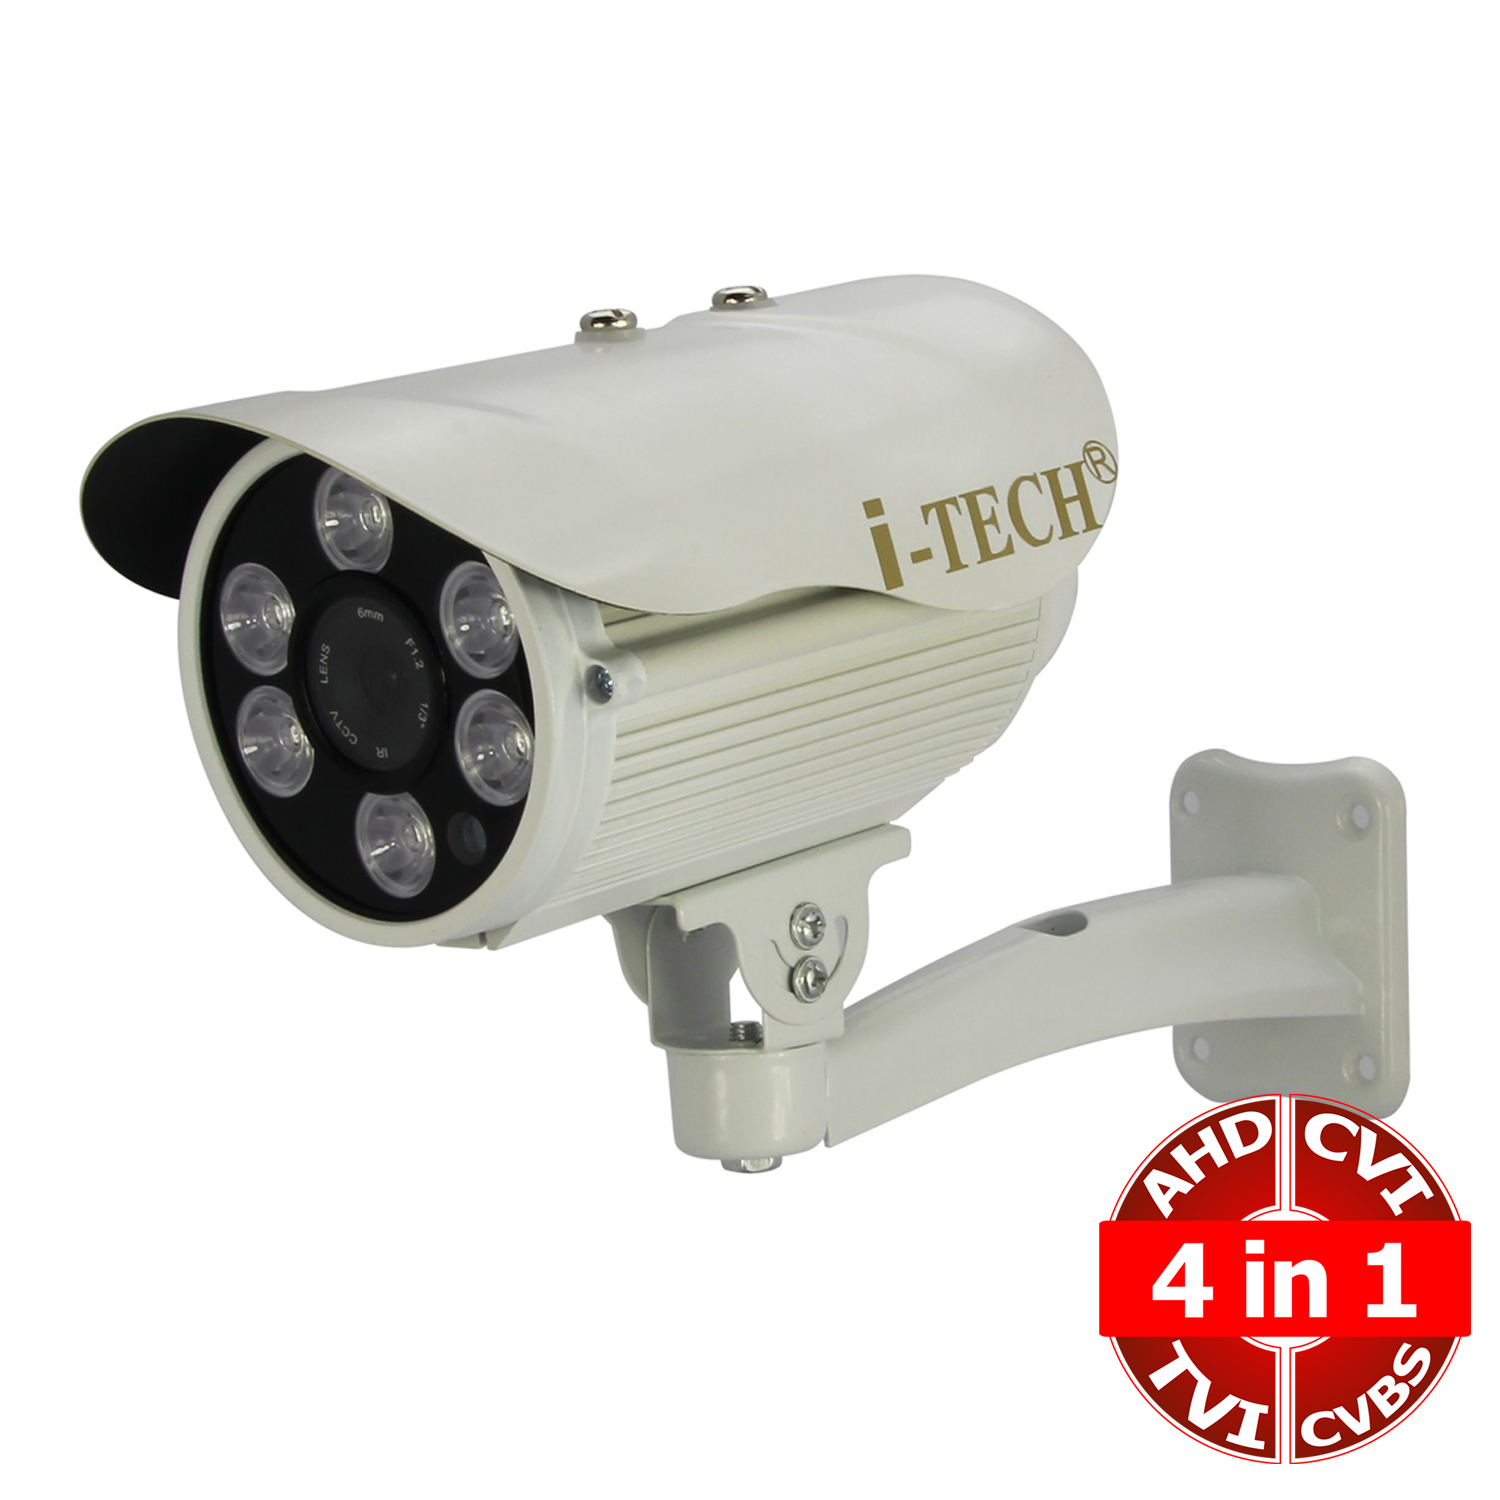 Camera AHD 4 in 1 iTech-X6VI